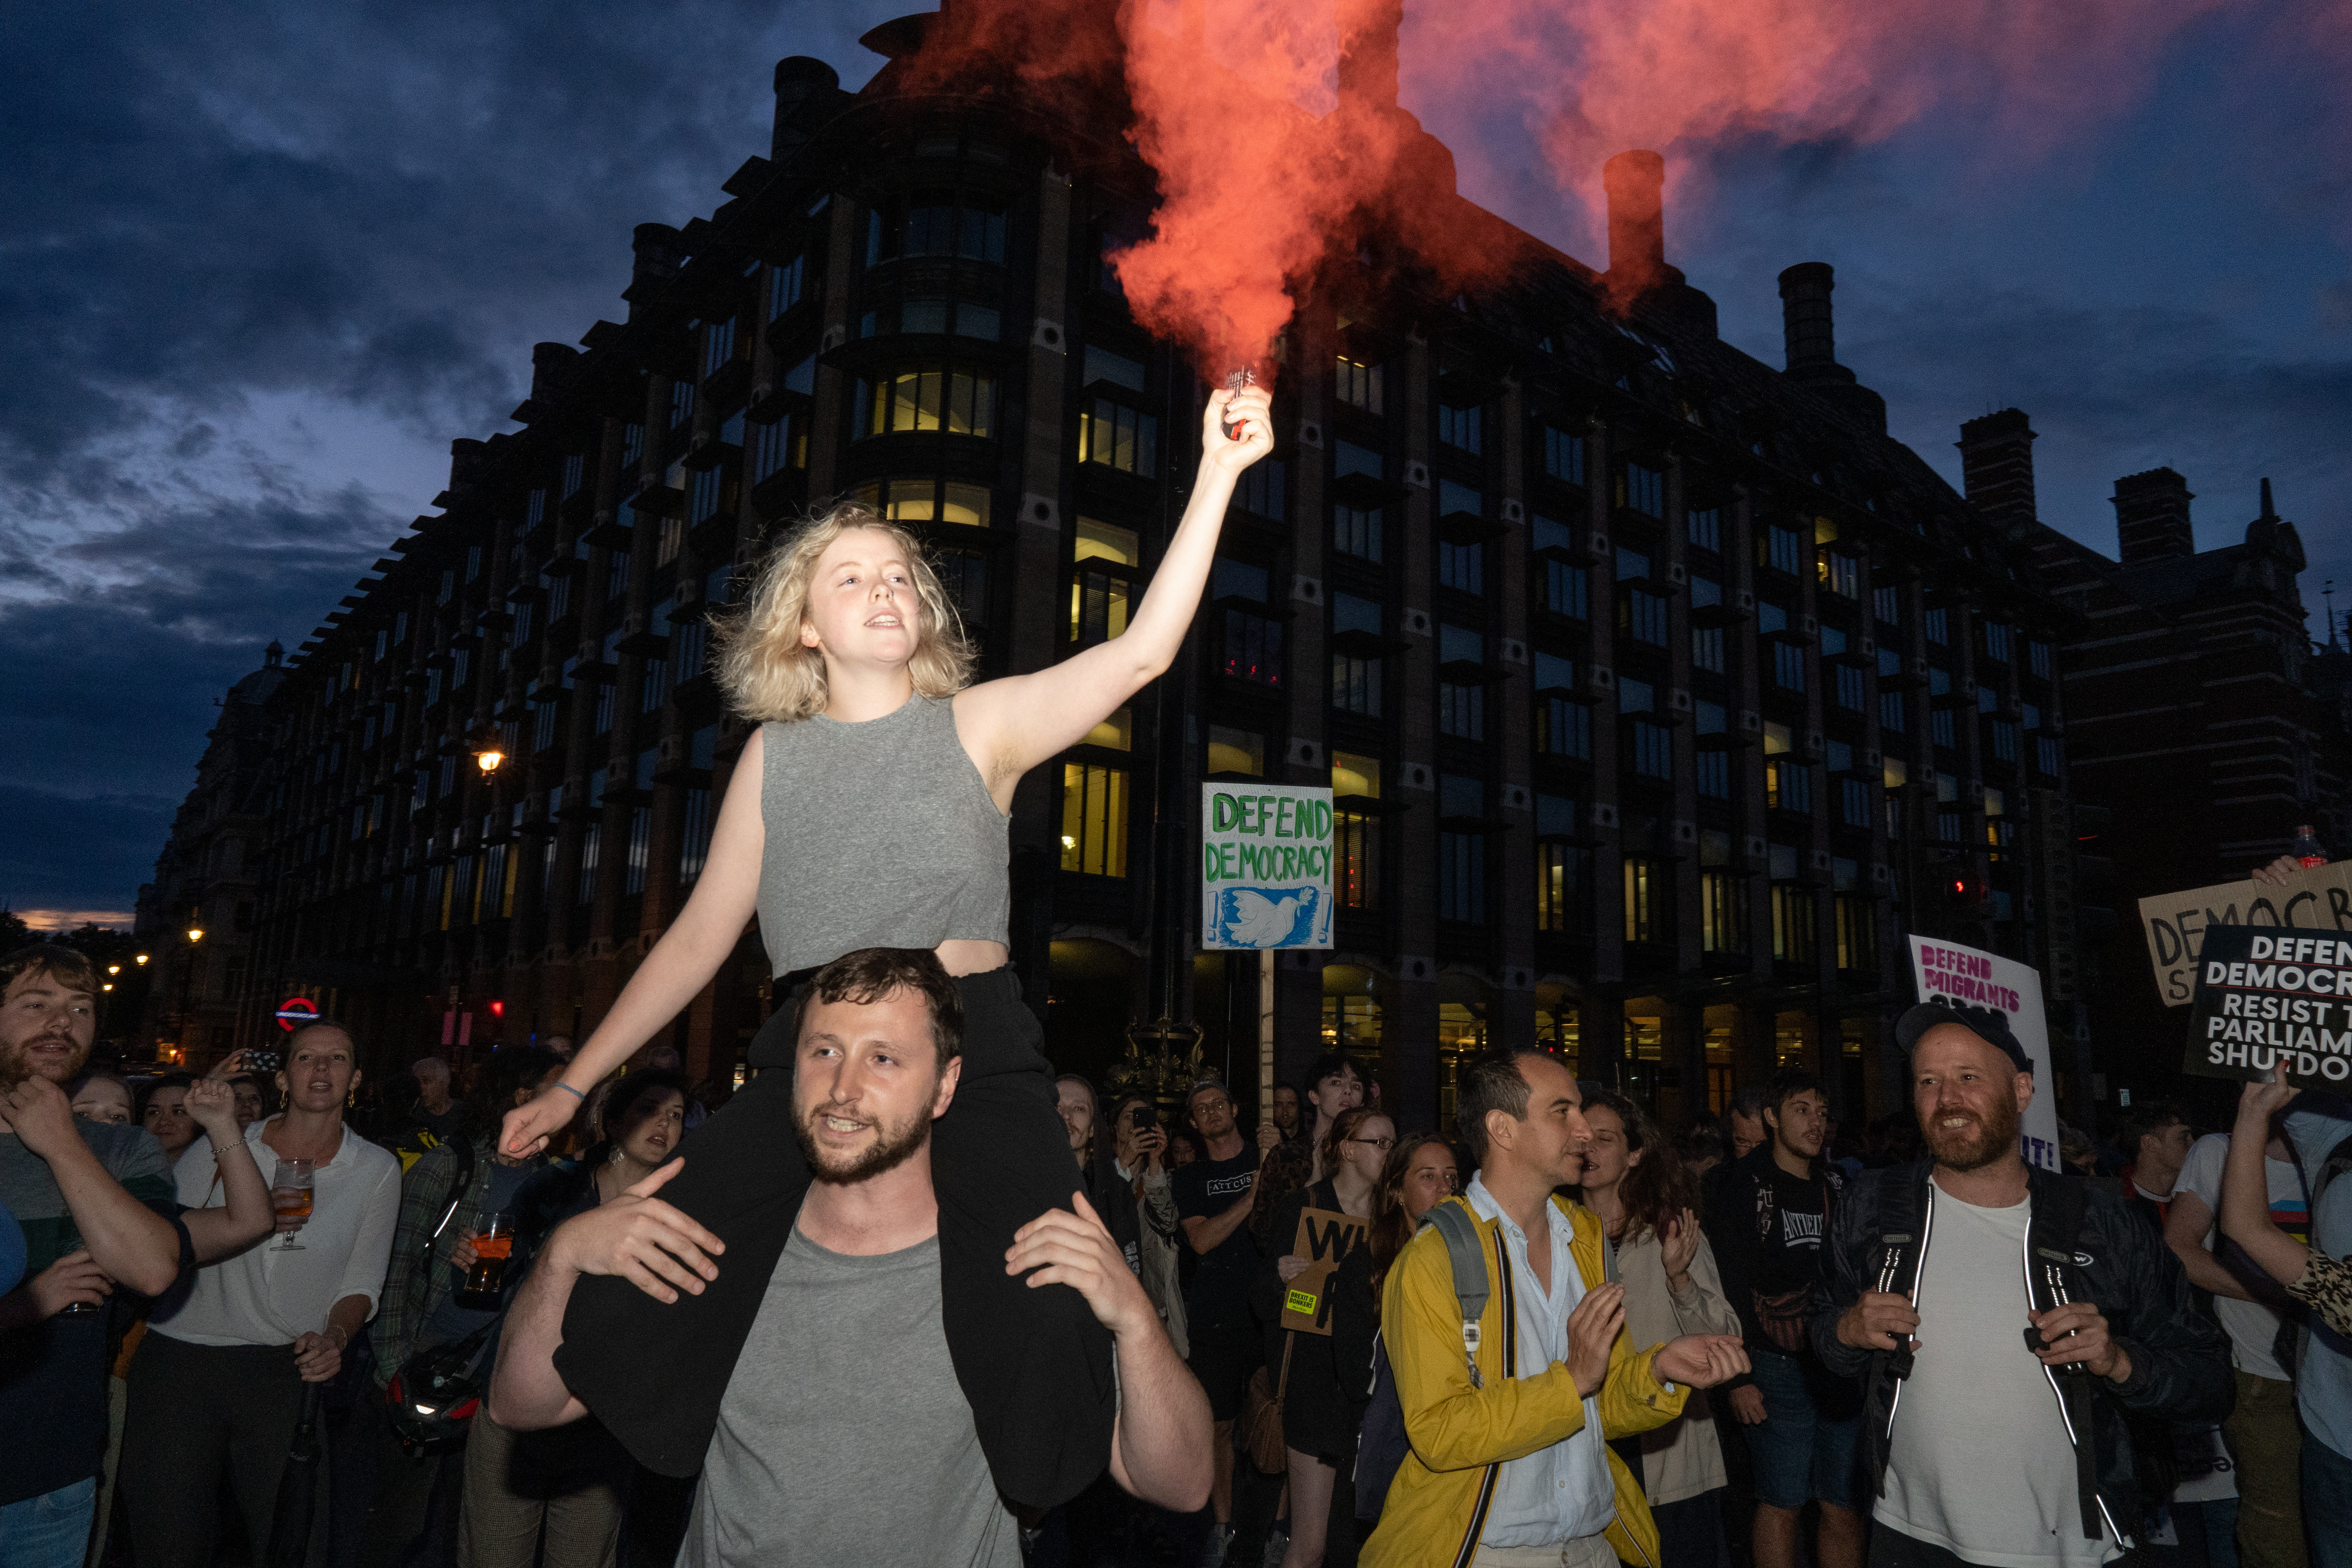 A woman is seen with a flare on westminster bridge outside the houses of parliament where hundreds of people are seen protesting against Boris Johnson